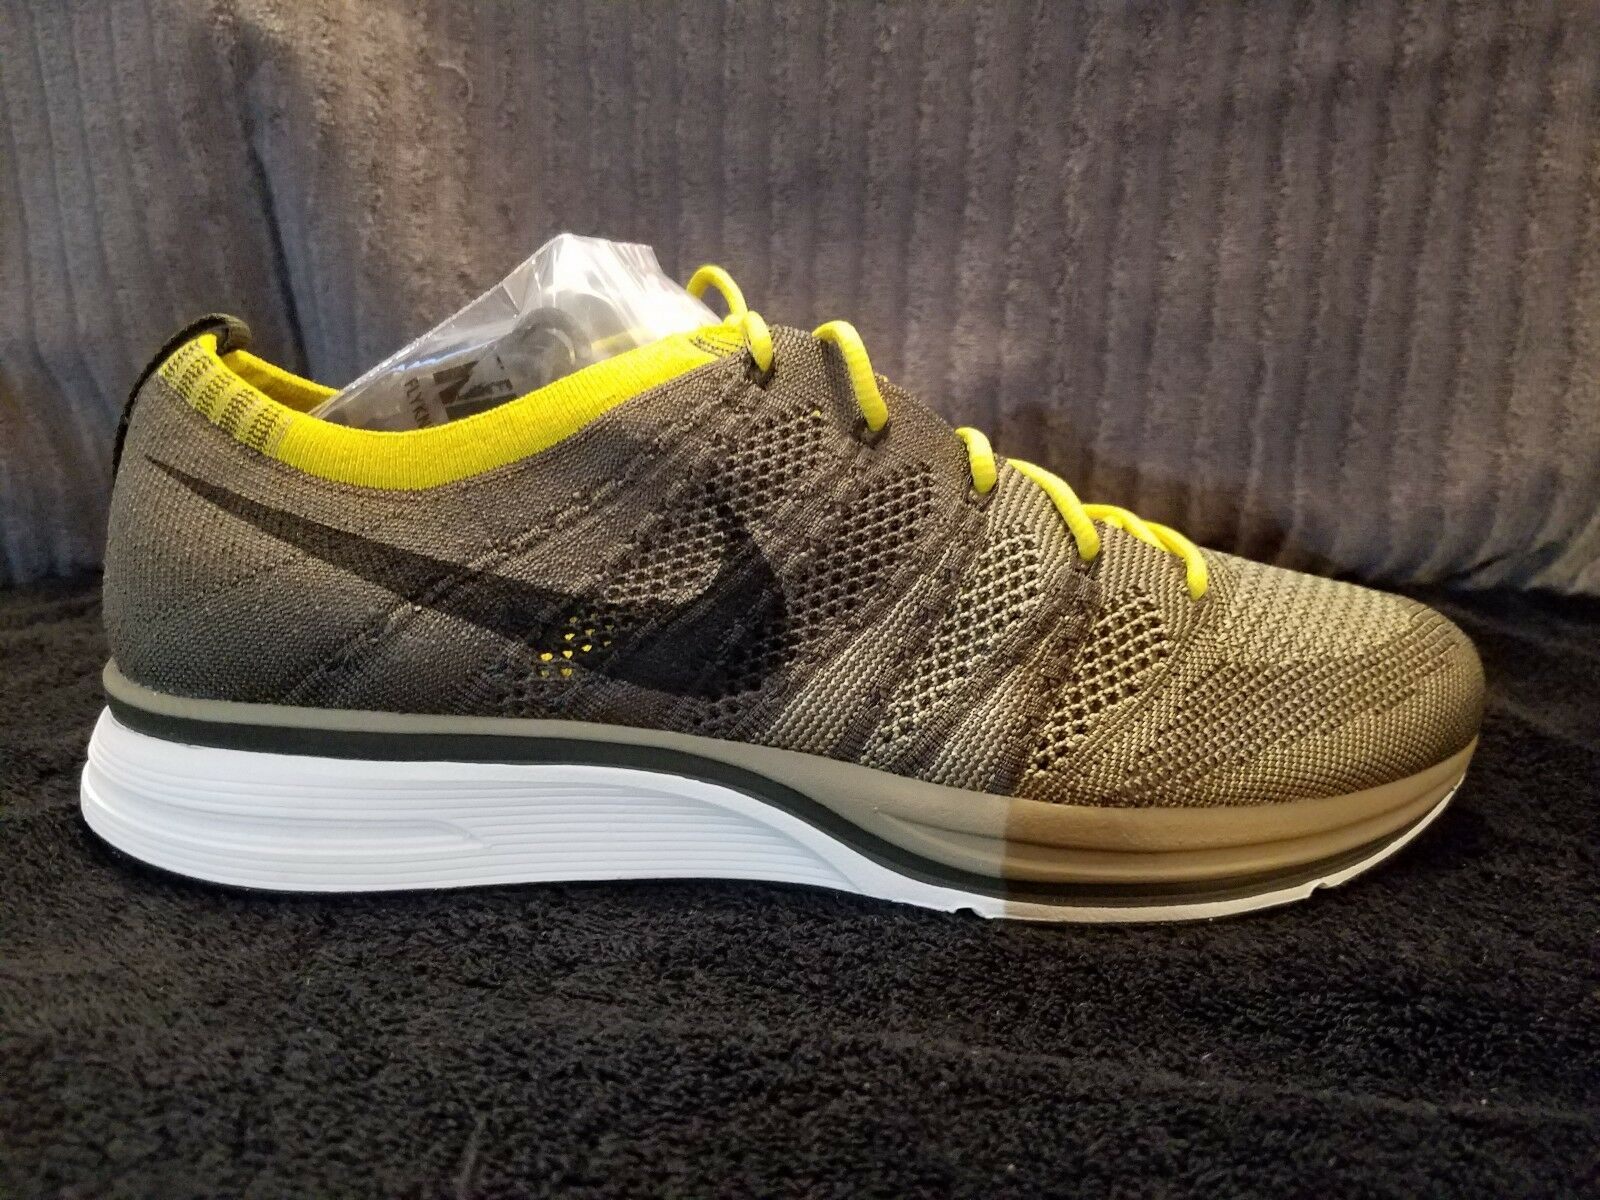 Nike flyknit trainer olive ah8396-300 44 44 44 ff4194